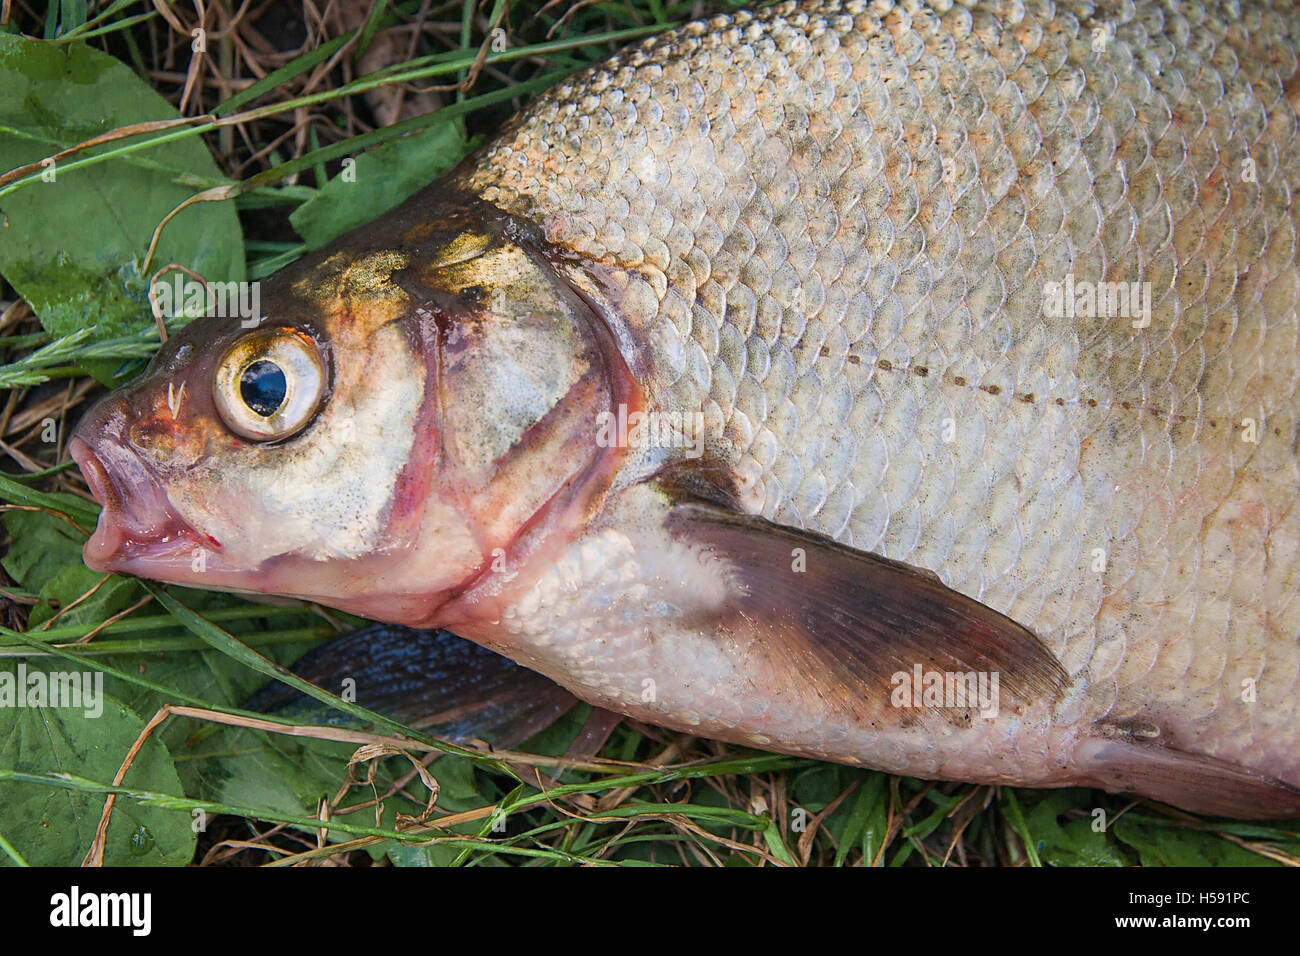 Freshwater fish bream - Freshwater Fish Just Taken From The Water Several Bream Fish On Green Grass Catching Fish Common Bream